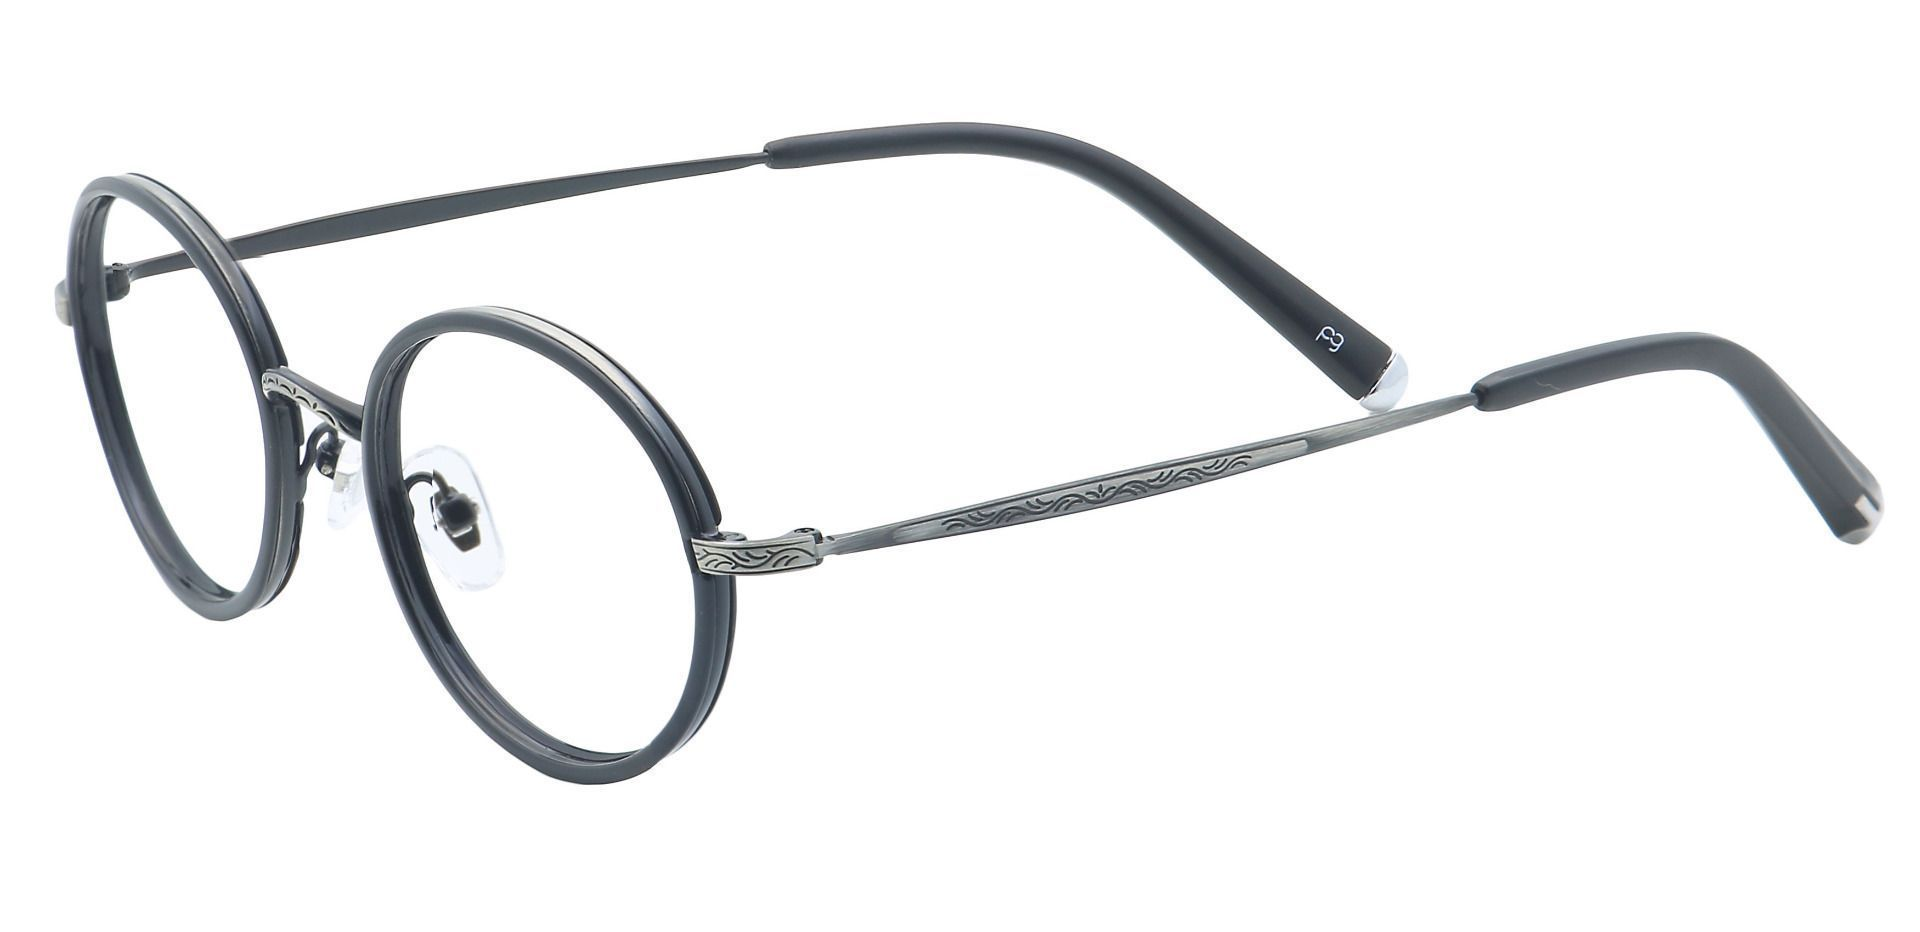 Petunia Round Progressive Glasses - Black